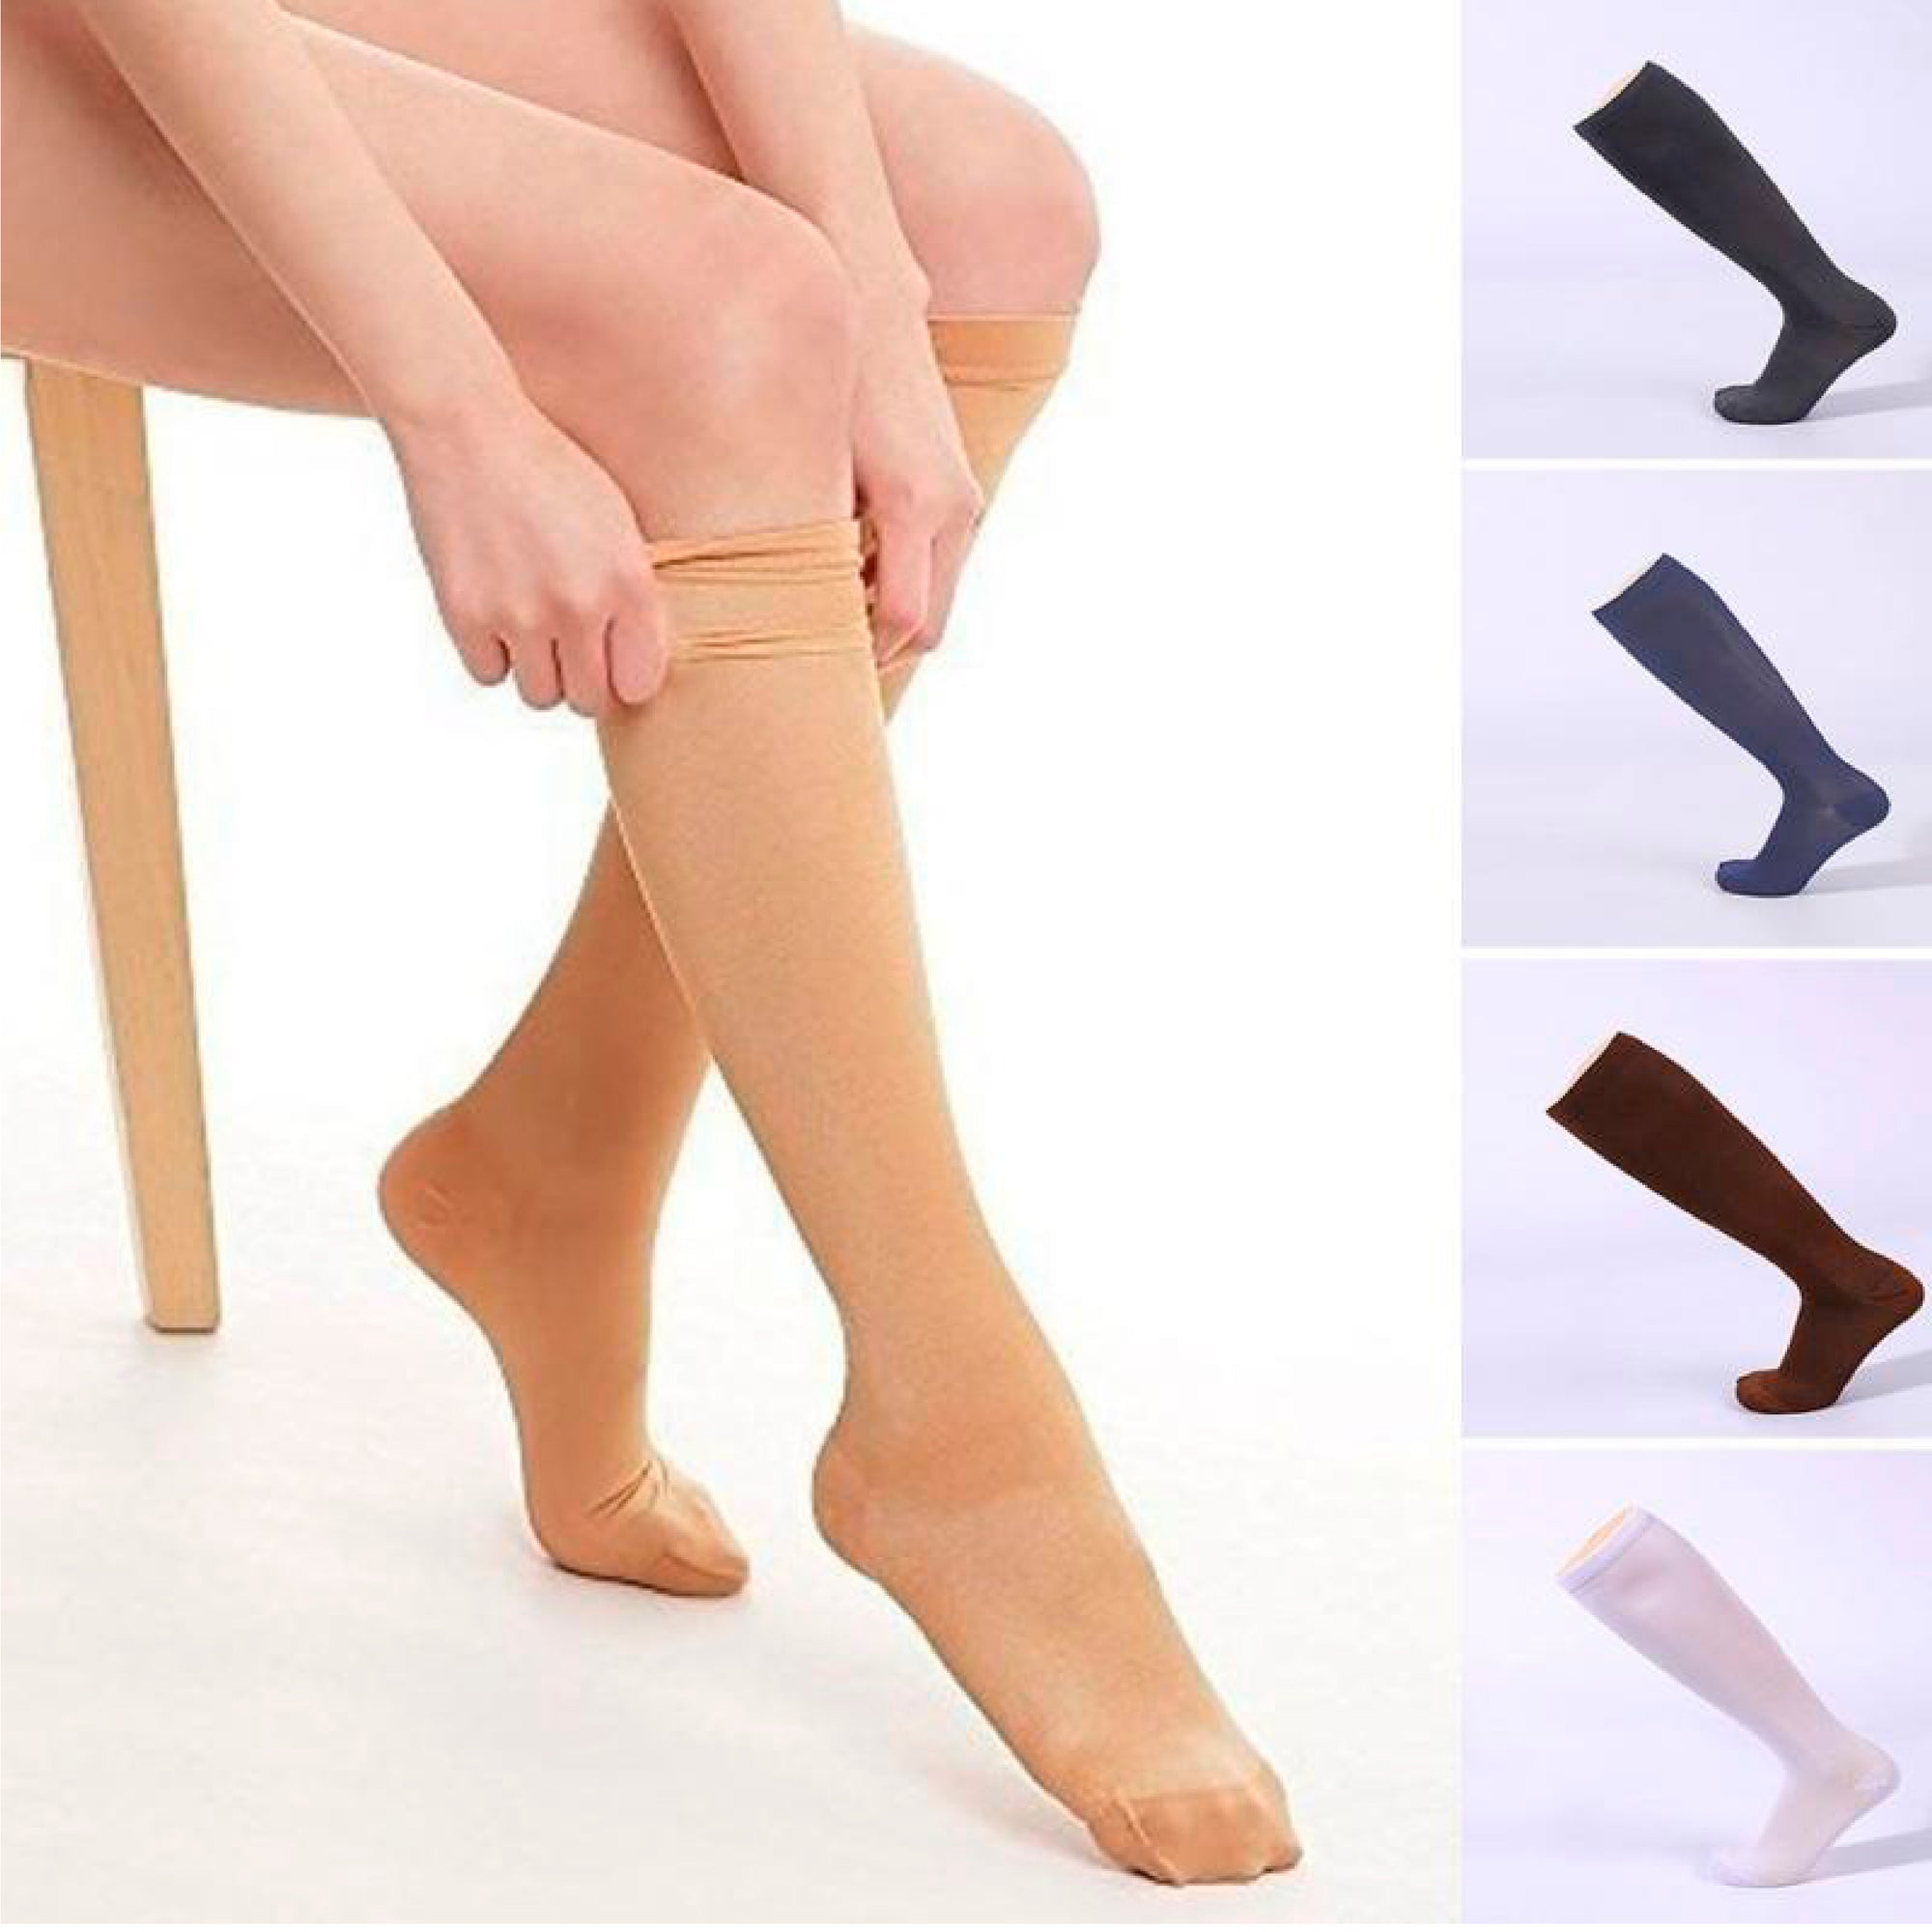 ae9b351943 Compression Stockings for Arthritis Pain Relief - ArthritisHope